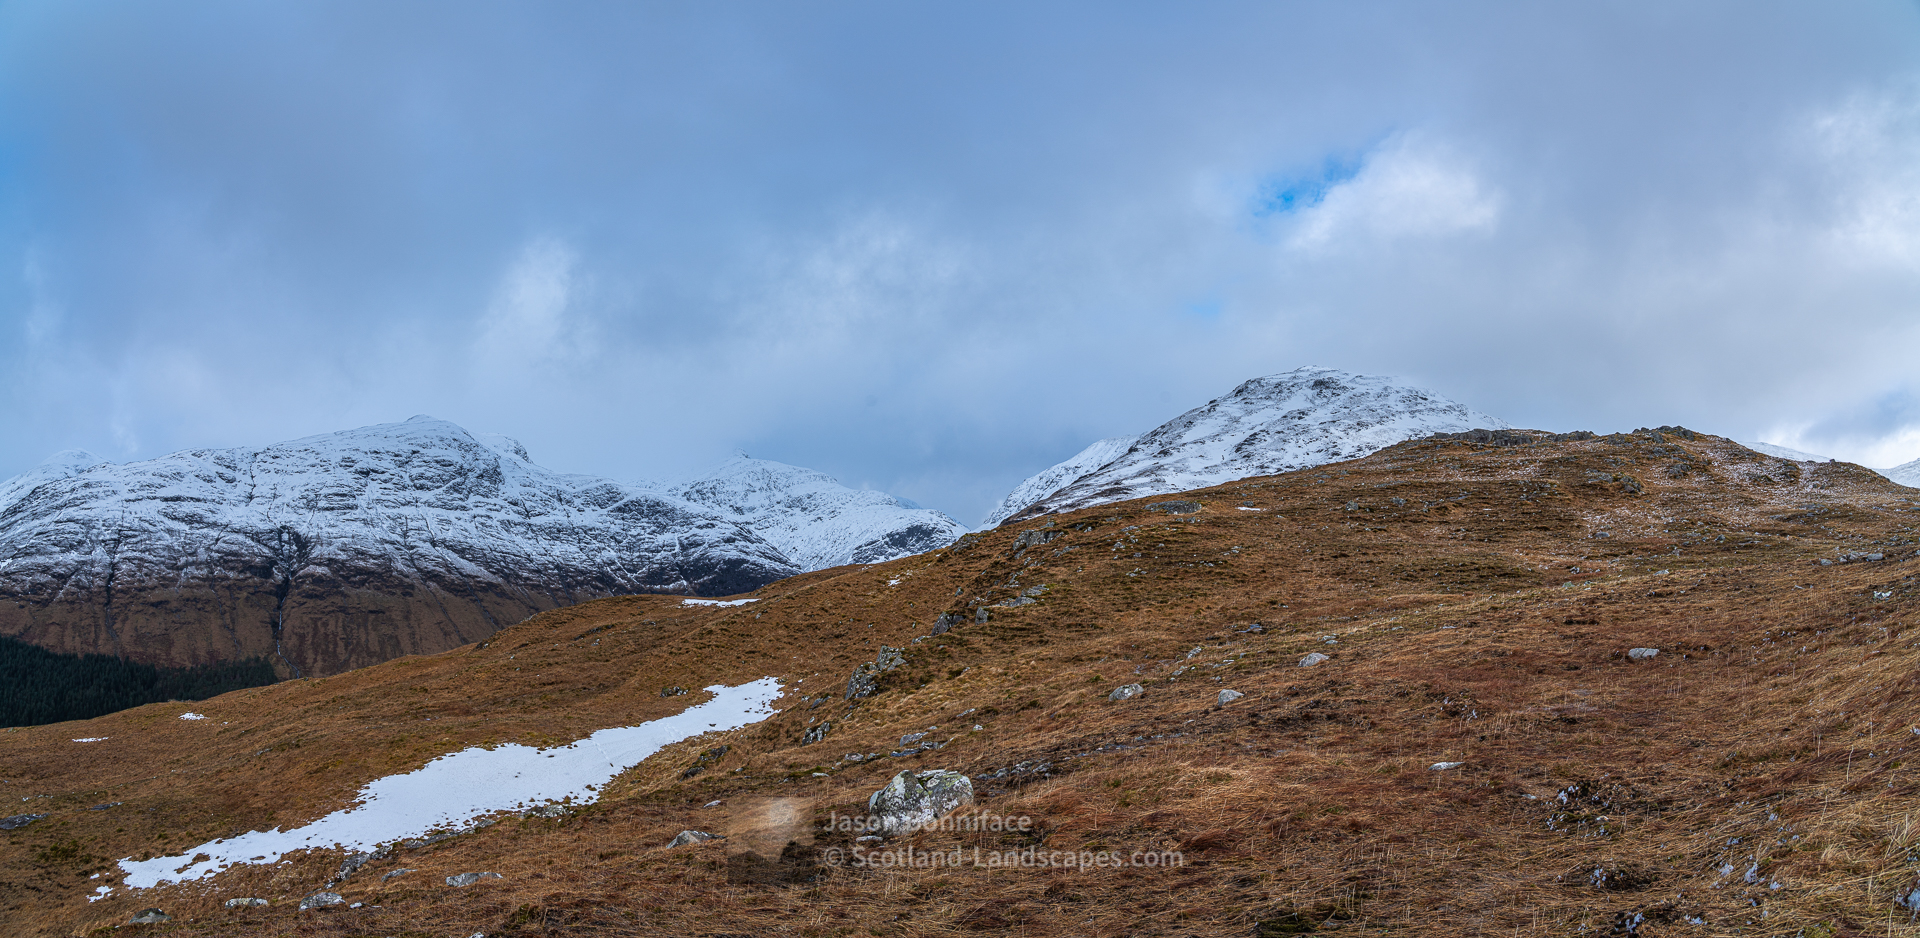 Meall a' Bhuiridh and the Corbett Beinn Maol Chaluim on the west side of Glen Etive